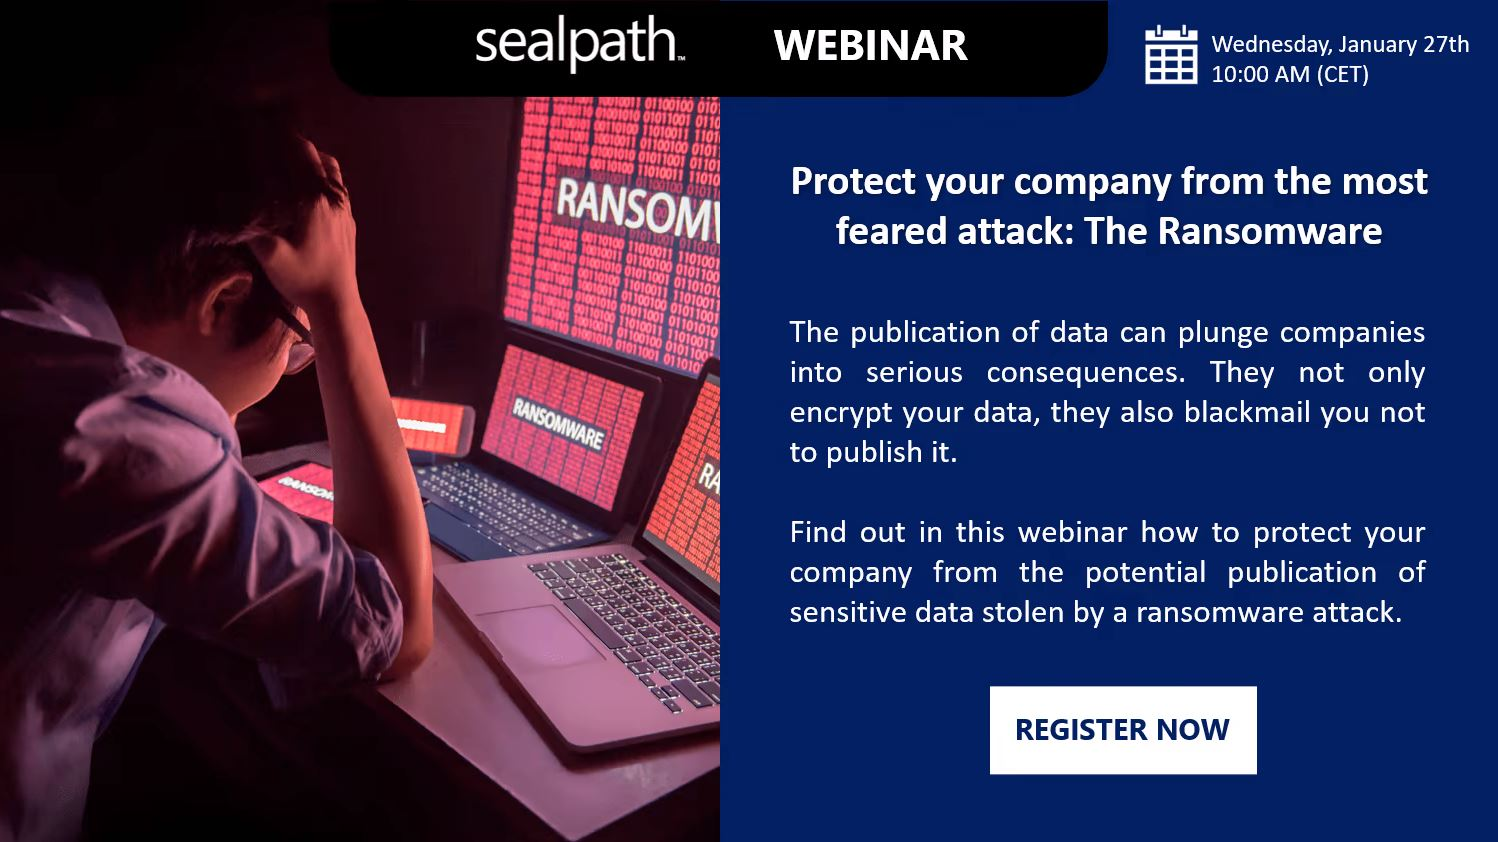 Protect your company from the most feared attack: The Ransomware